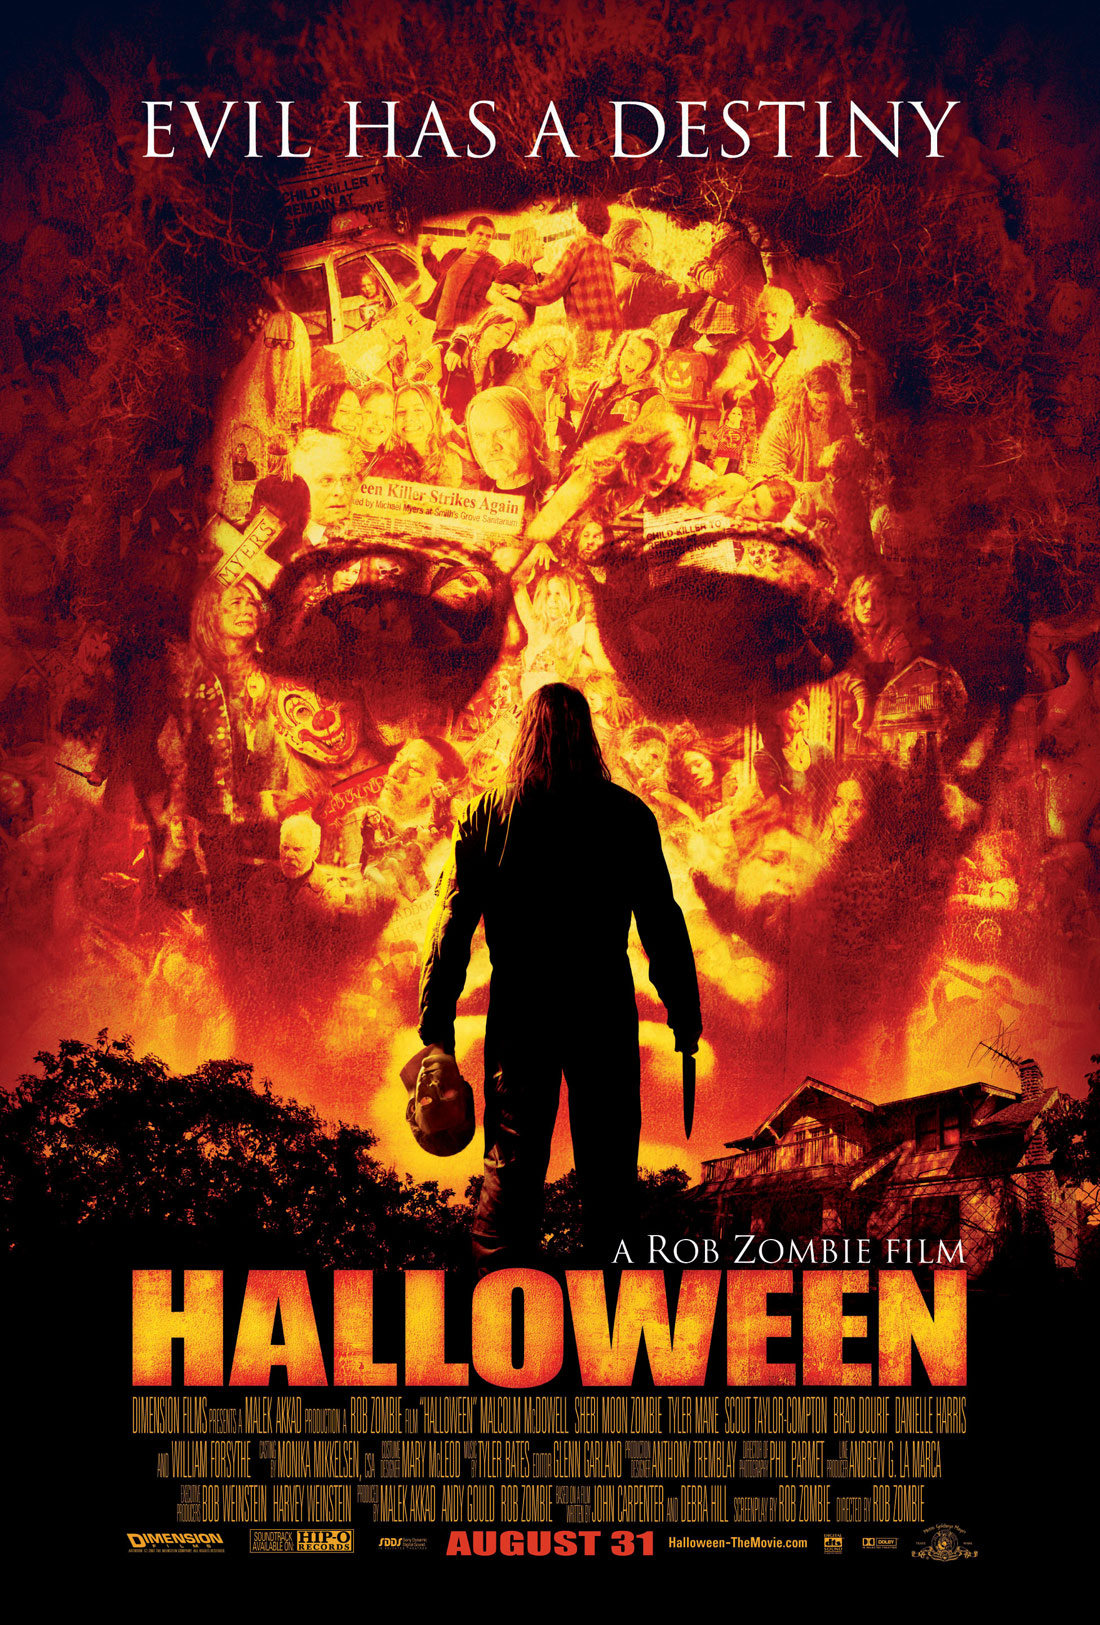 Halloween Returns: A Guide to Make One Good Sequel